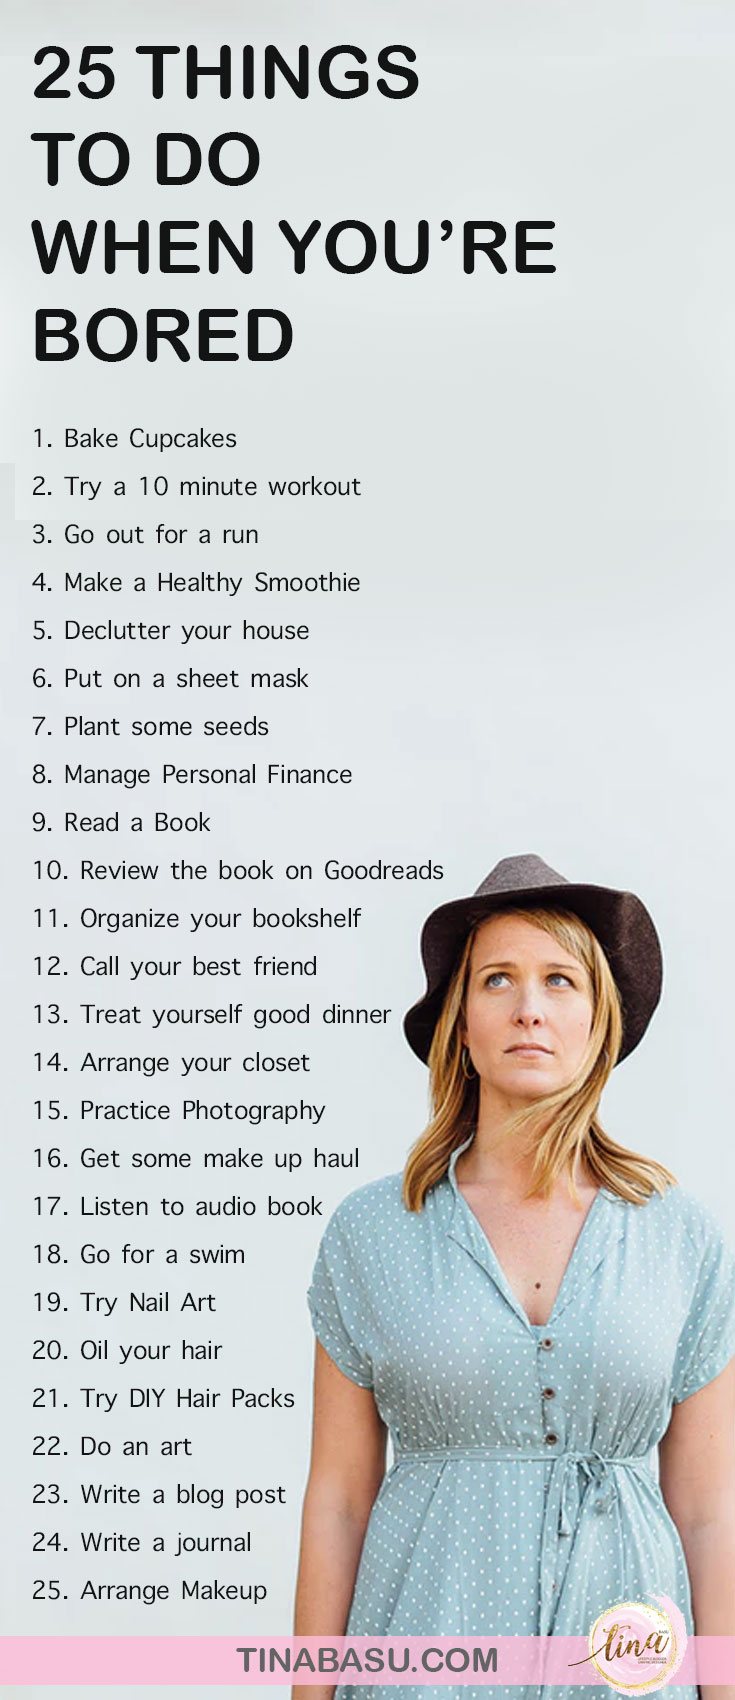 25 things to do when you are bored